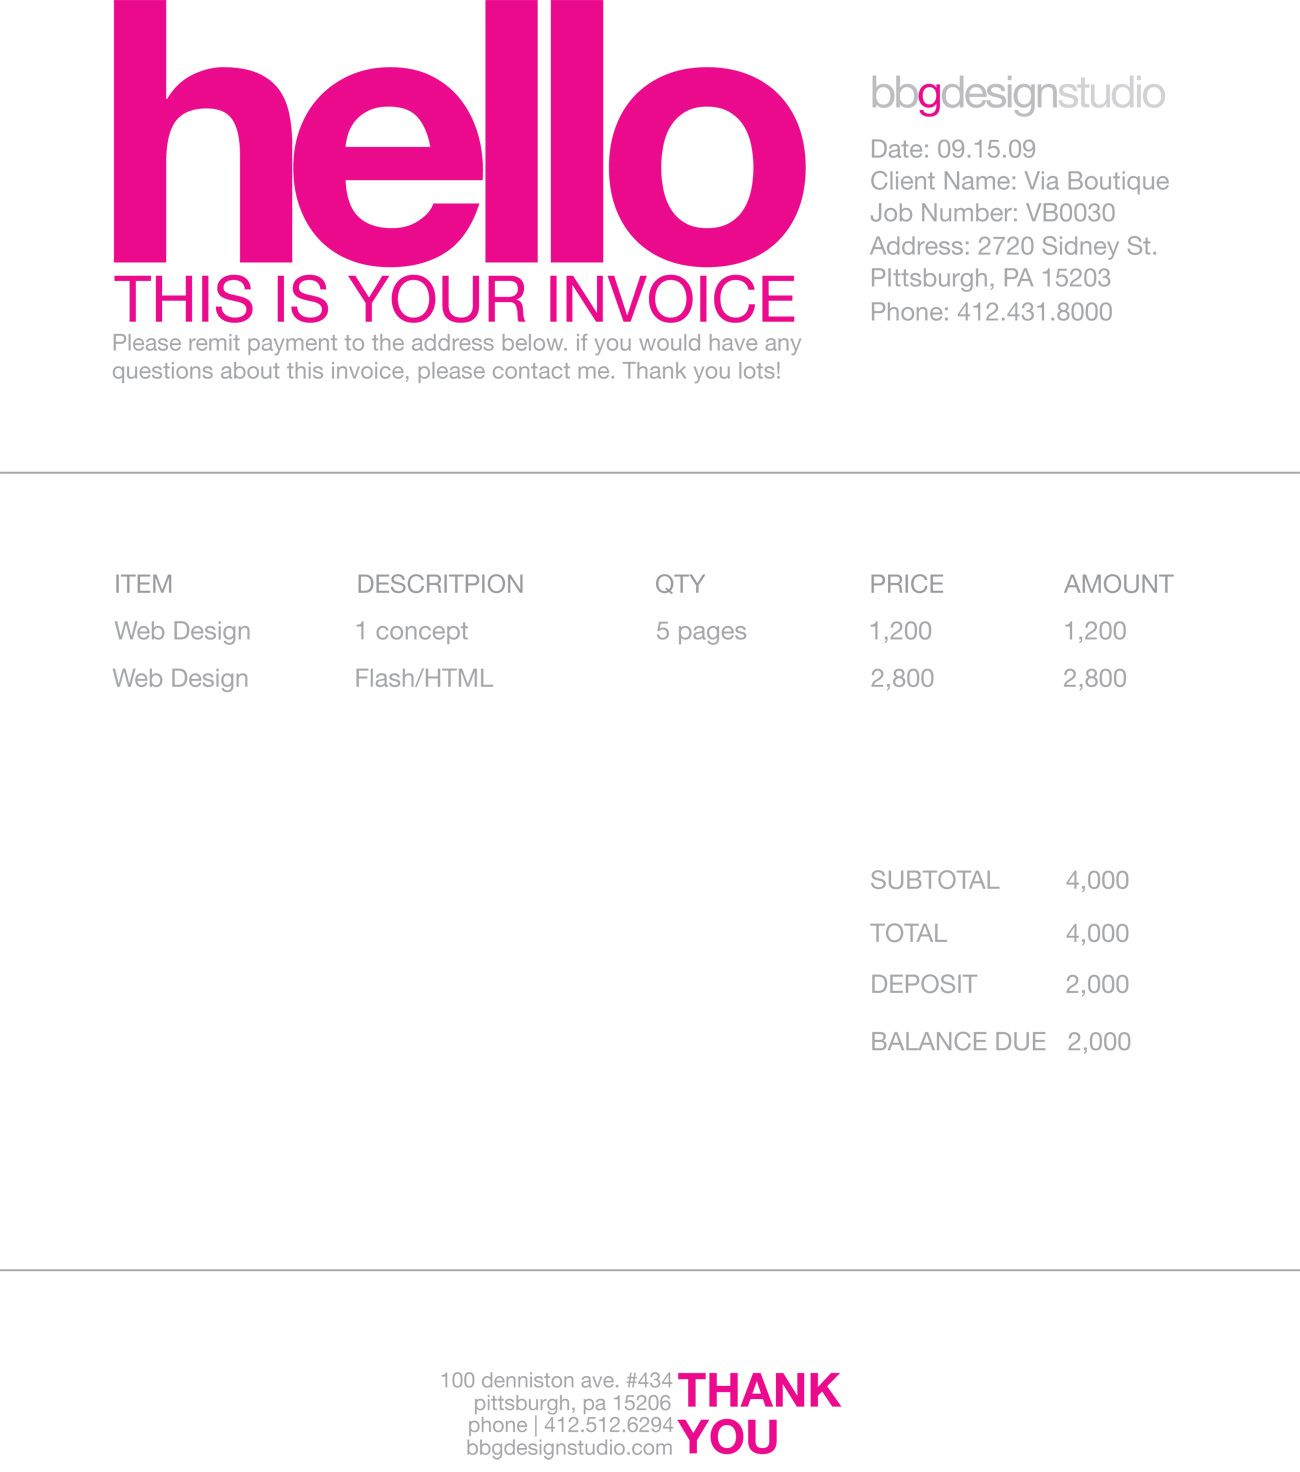 Hius  Seductive  Images About Invoice Design On Pinterest With Outstanding Xero Invoices Besides Invoice Templates In Word Furthermore Chase Online Invoicing With Lovely Electronic Invoice Payment Also Shipment Invoice In Addition Car Repair Invoice Template And How To Make Invoice In Word As Well As What Is Sales Invoice Additionally Honda Civic Invoice From Pinterestcom With Hius  Outstanding  Images About Invoice Design On Pinterest With Lovely Xero Invoices Besides Invoice Templates In Word Furthermore Chase Online Invoicing And Seductive Electronic Invoice Payment Also Shipment Invoice In Addition Car Repair Invoice Template From Pinterestcom